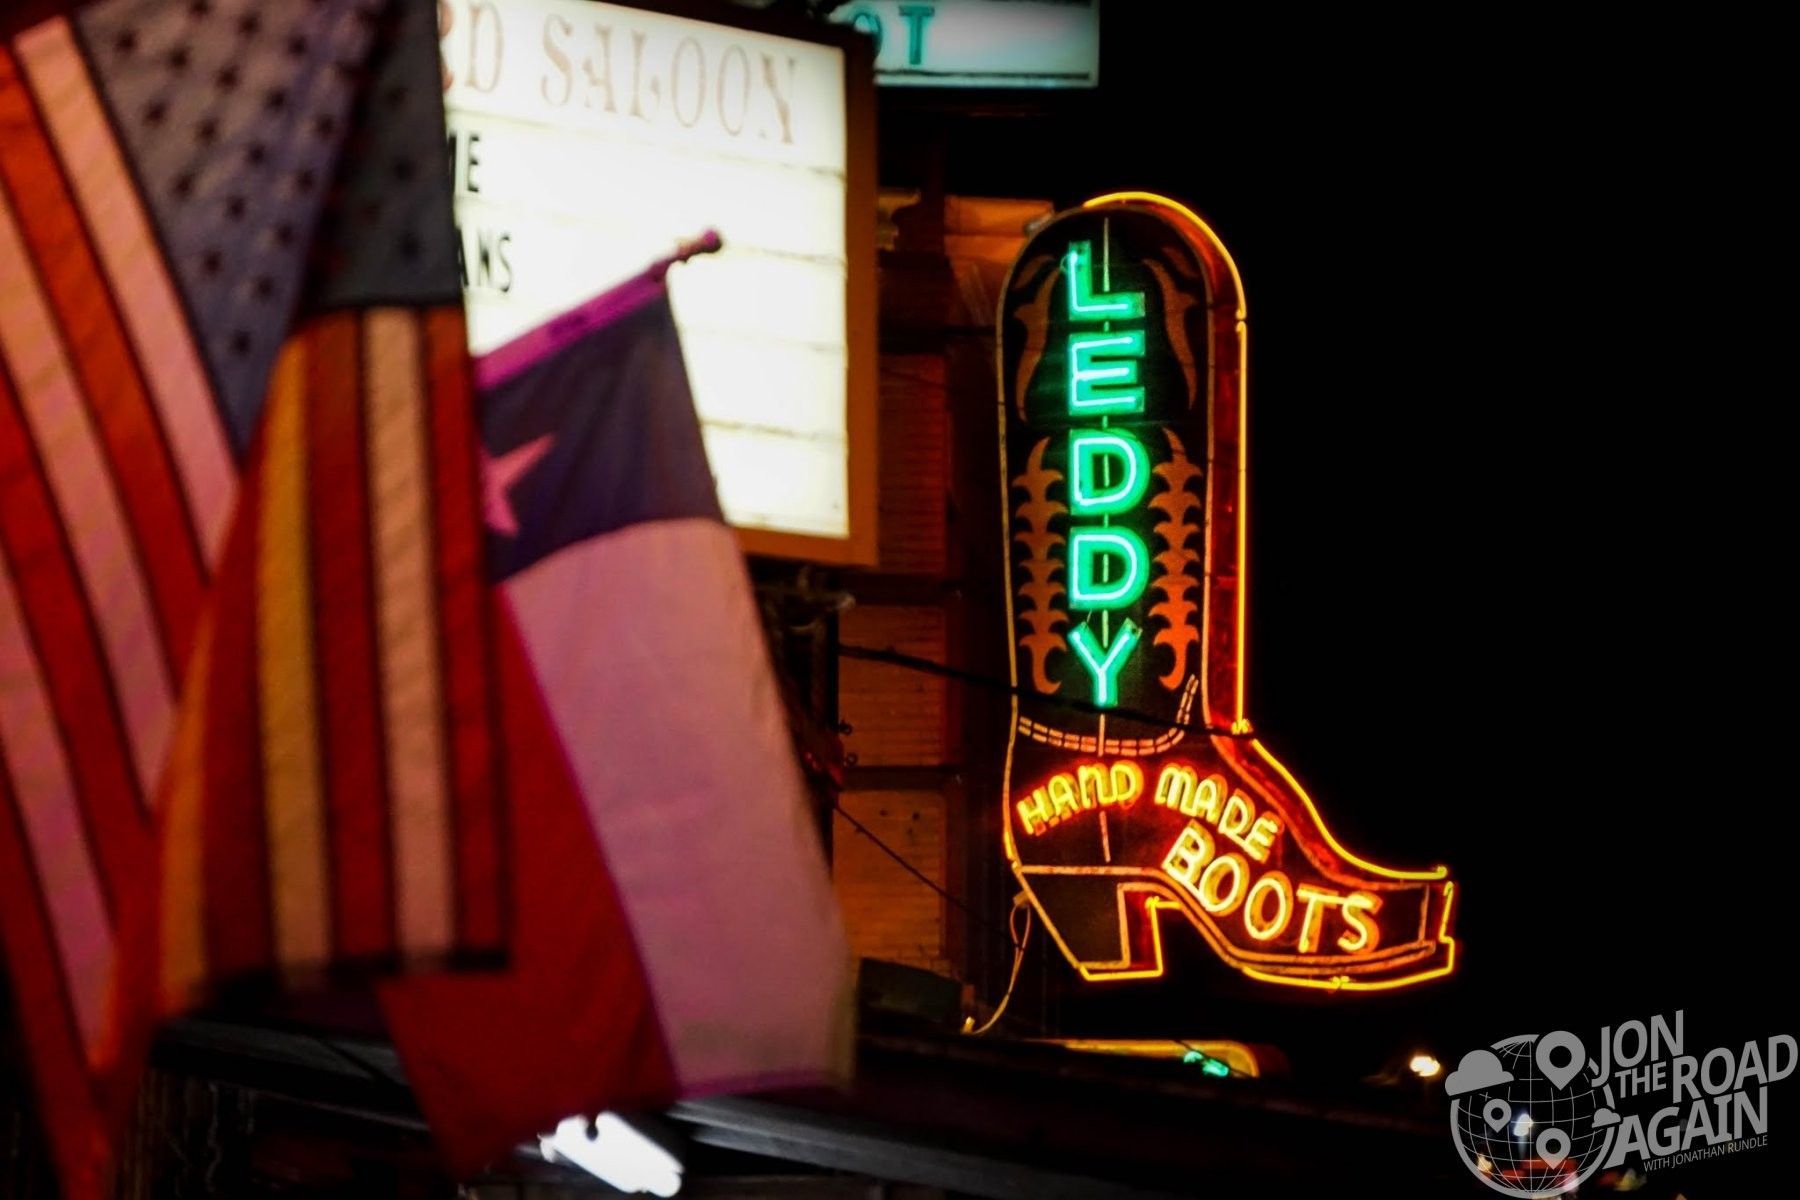 Neon sign in Fort Worth